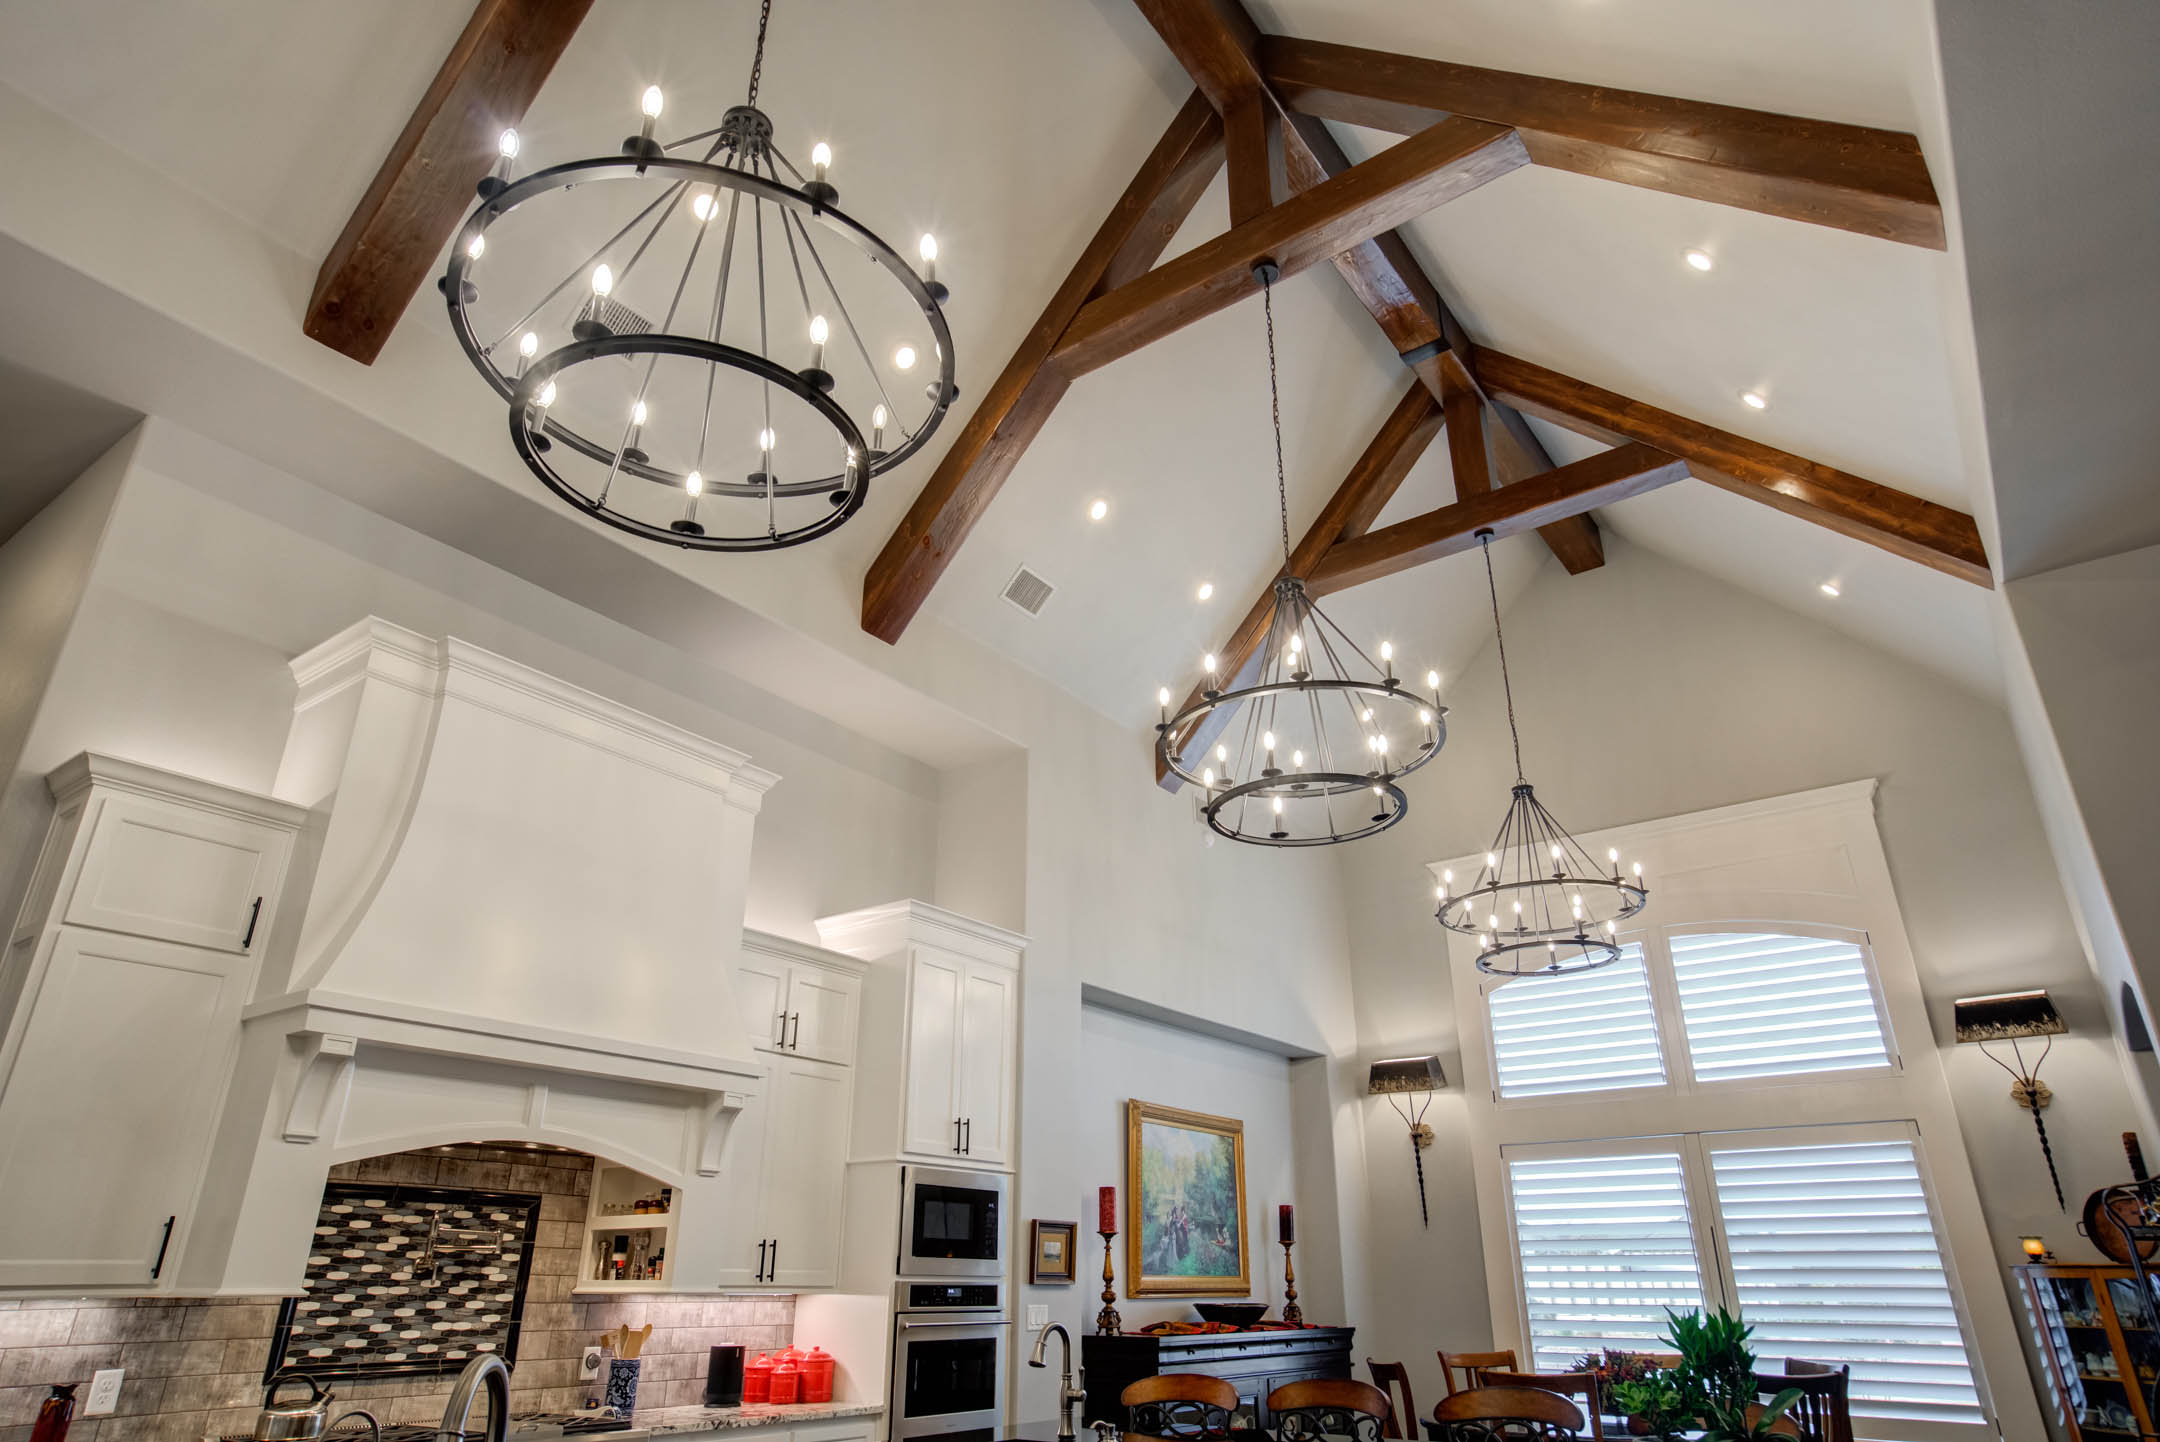 Amazing vaulted ceiling in kitchen of custom home in Lubbock, Texas.